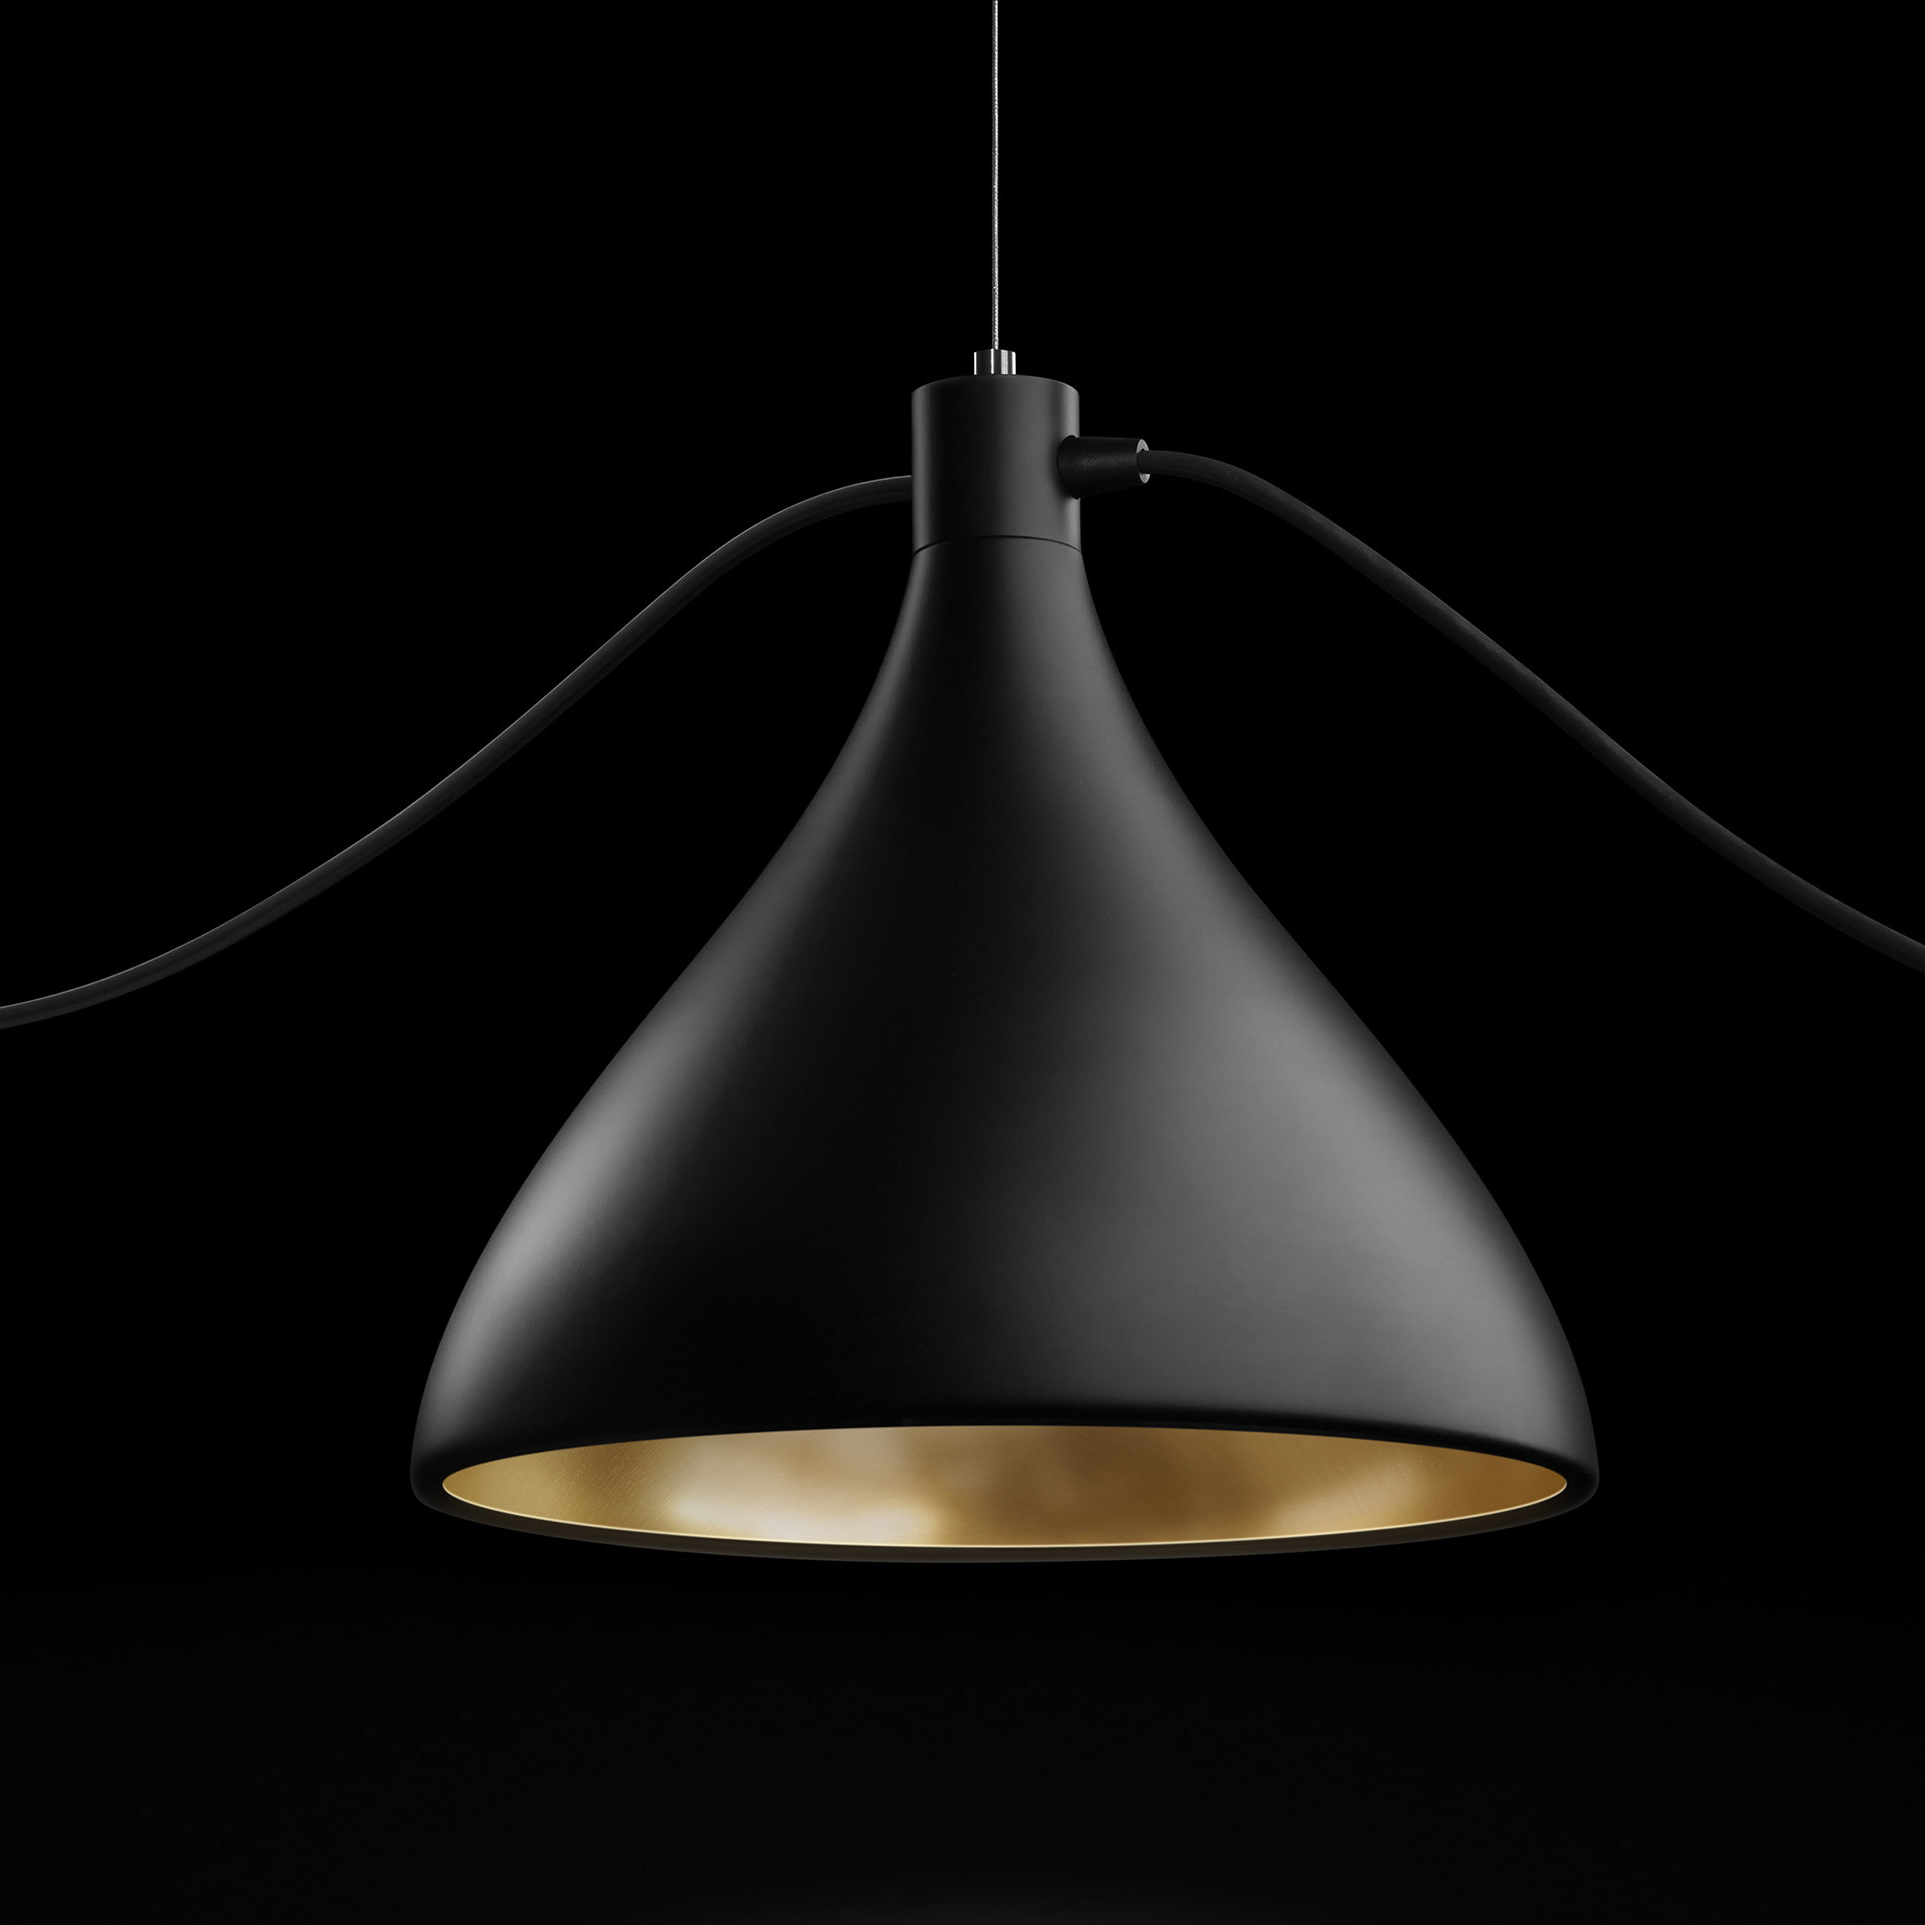 Pablo Designs Swell 1 Light Single Bell Pendant & Reviews With Well Known Ryker 1 Light Single Dome Pendants (View 12 of 20)